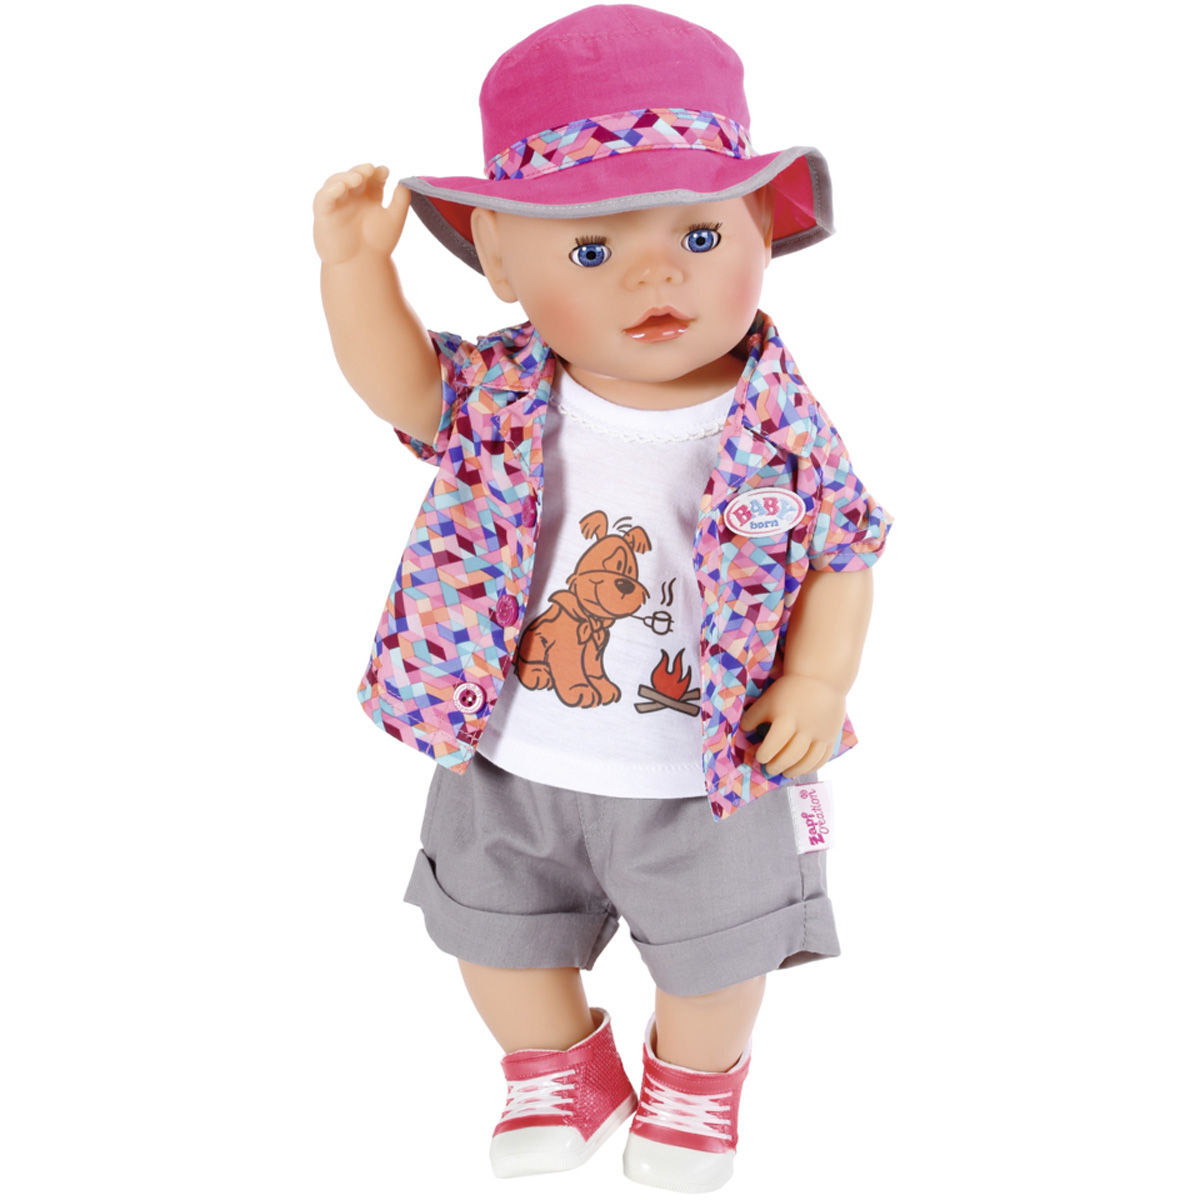 Zapf CreationR BABY BornR Play Fun Deluxe Camping Outfit LAdt Pause Current Time 000 Duration Remaining Loaded 0